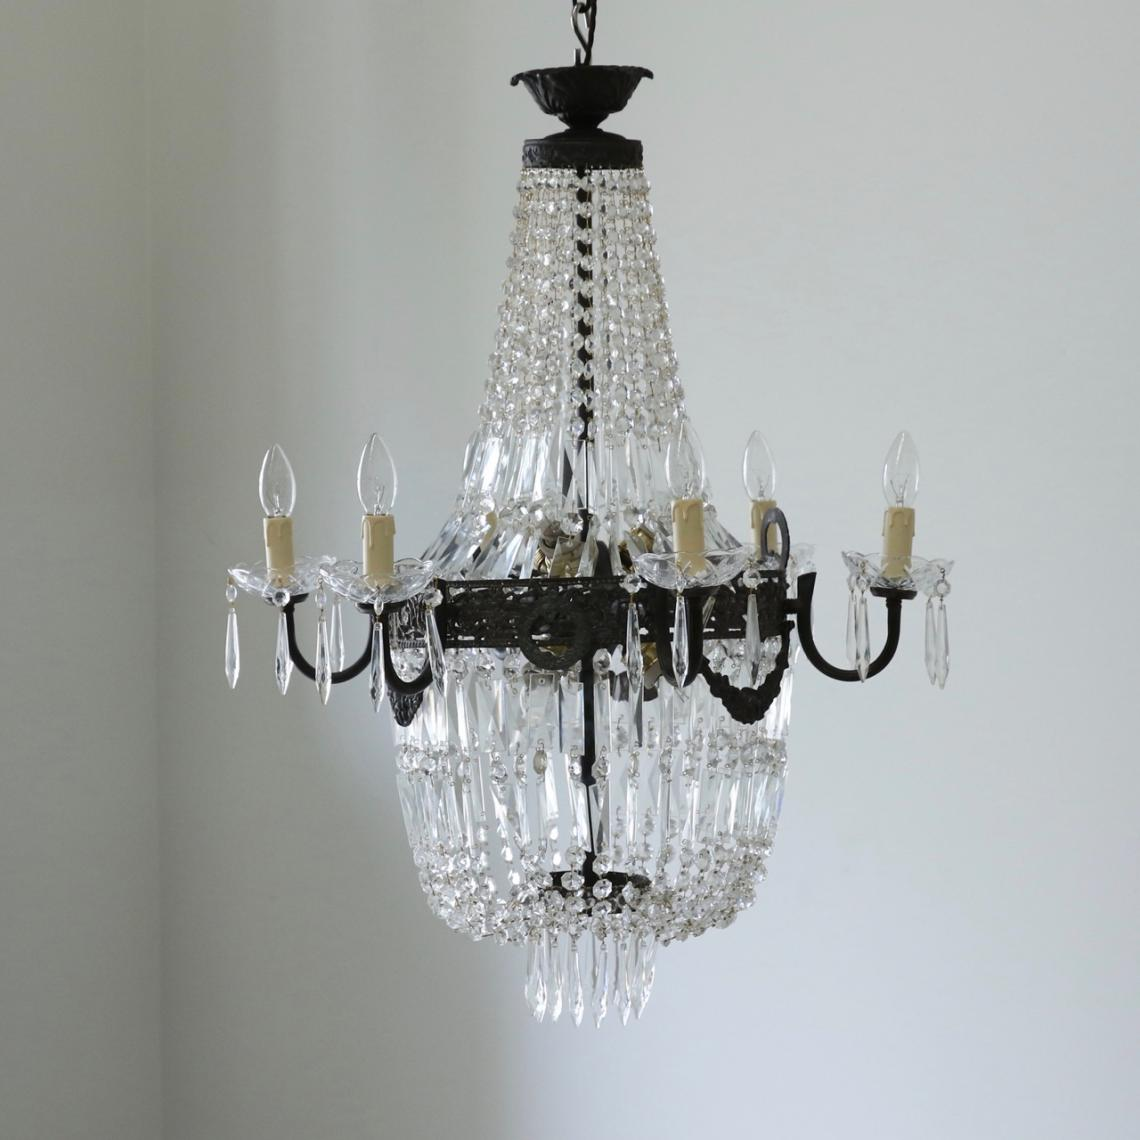 113-38 - Pair of French 1920s Chandeliers